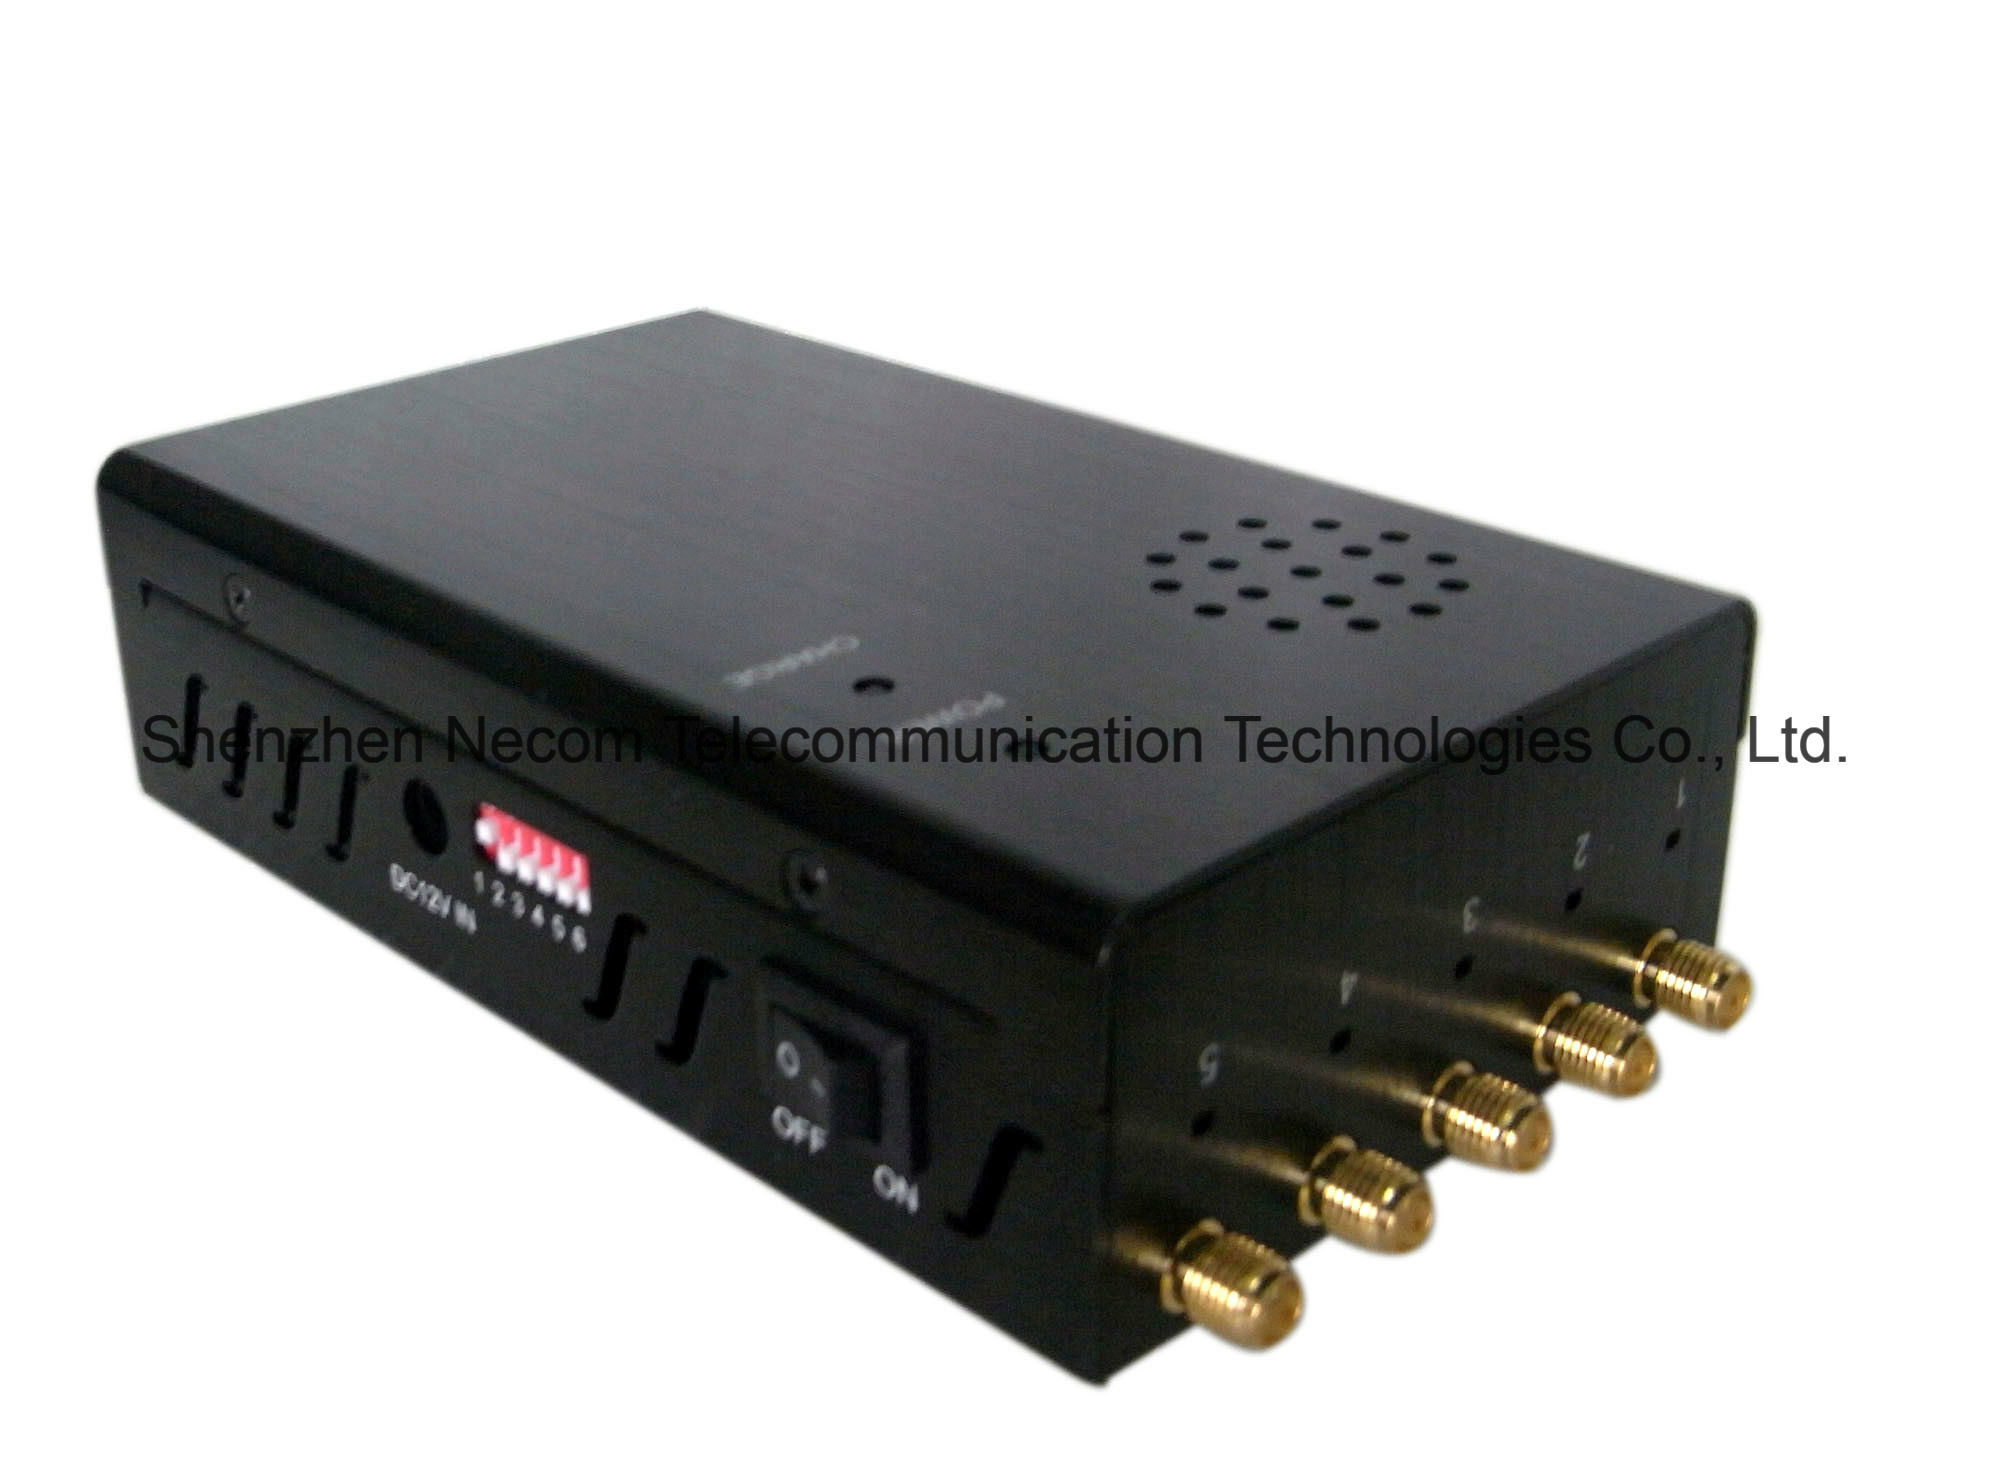 listening device jammer - China Fashion Style Newest CDMA/GSM/Dcs/Phs/3G Cell Phone Signal Jammer - China 5 Band Signal Blockers, Five Antennas Jammers